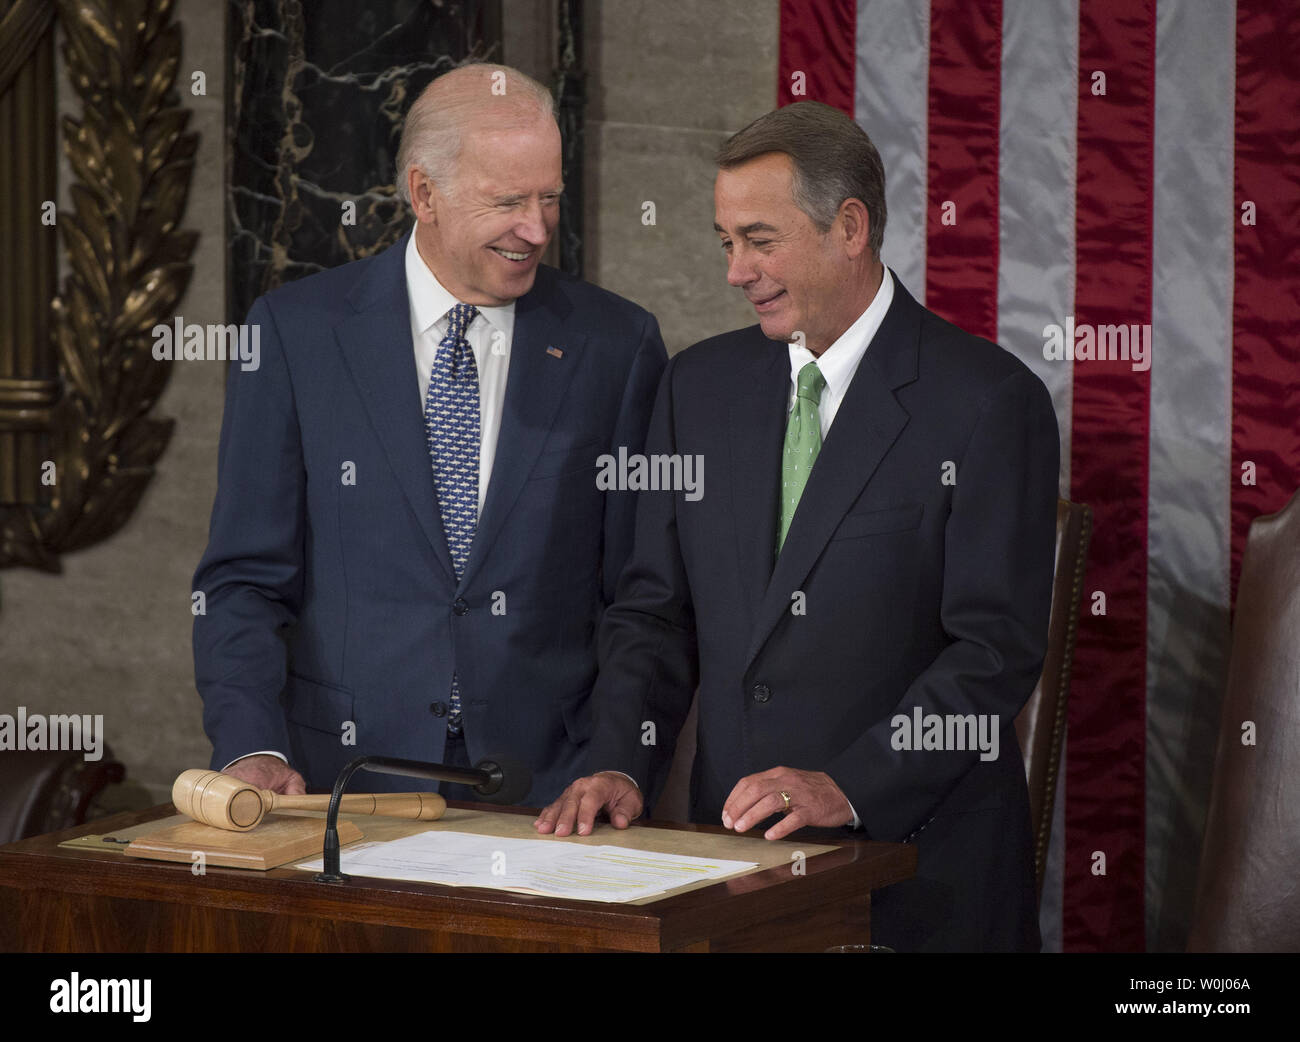 Vice President Joe Biden (L) talks with Speaker John Boehner (R-OH) prior to Pope Francis addressing a Joint Meeting of Congress at the U.S. Capitol Building in Washington, D.C. on September 24, 2015. Photo by Kevin Dietsch/UPI - Stock Image